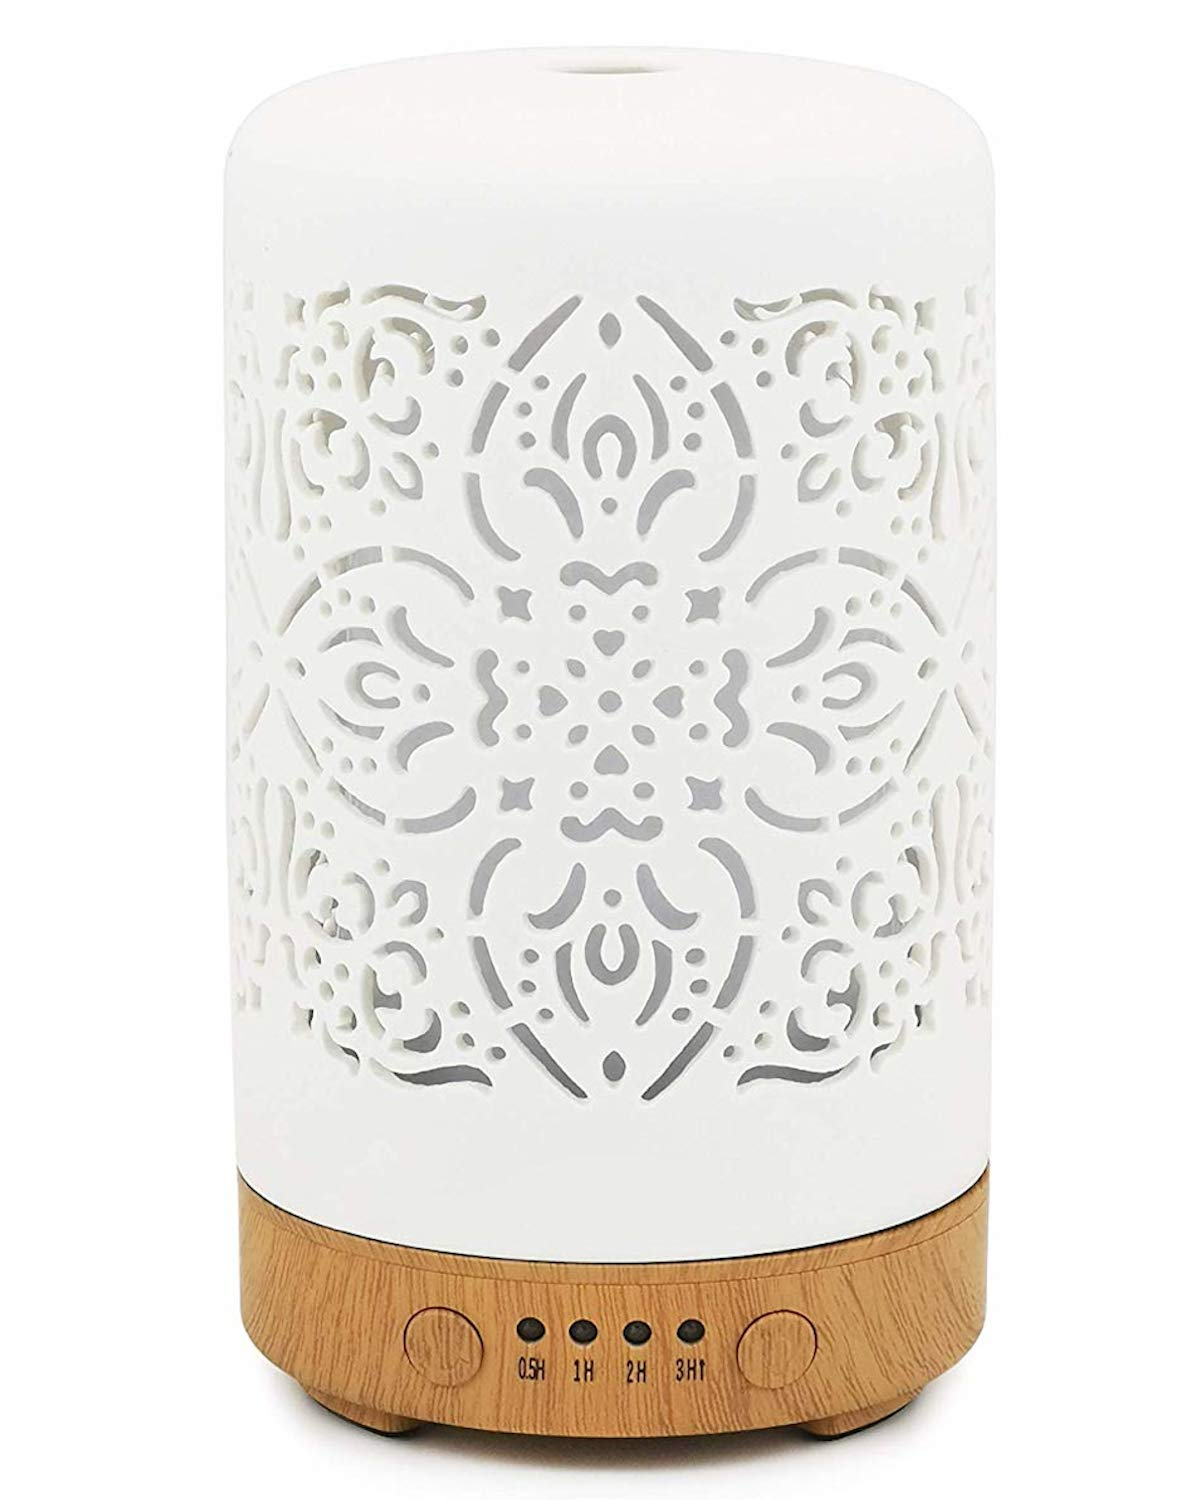 Elegant Life Essential Oil Diffusers Ultrasonic 100 ml White Ceramic Aromatherapy Diffuser with 4 Timer - Cool Mist Humidifier, 7 Colors LED Lights - Waterless Auto Shut off for Home Office Bed Room